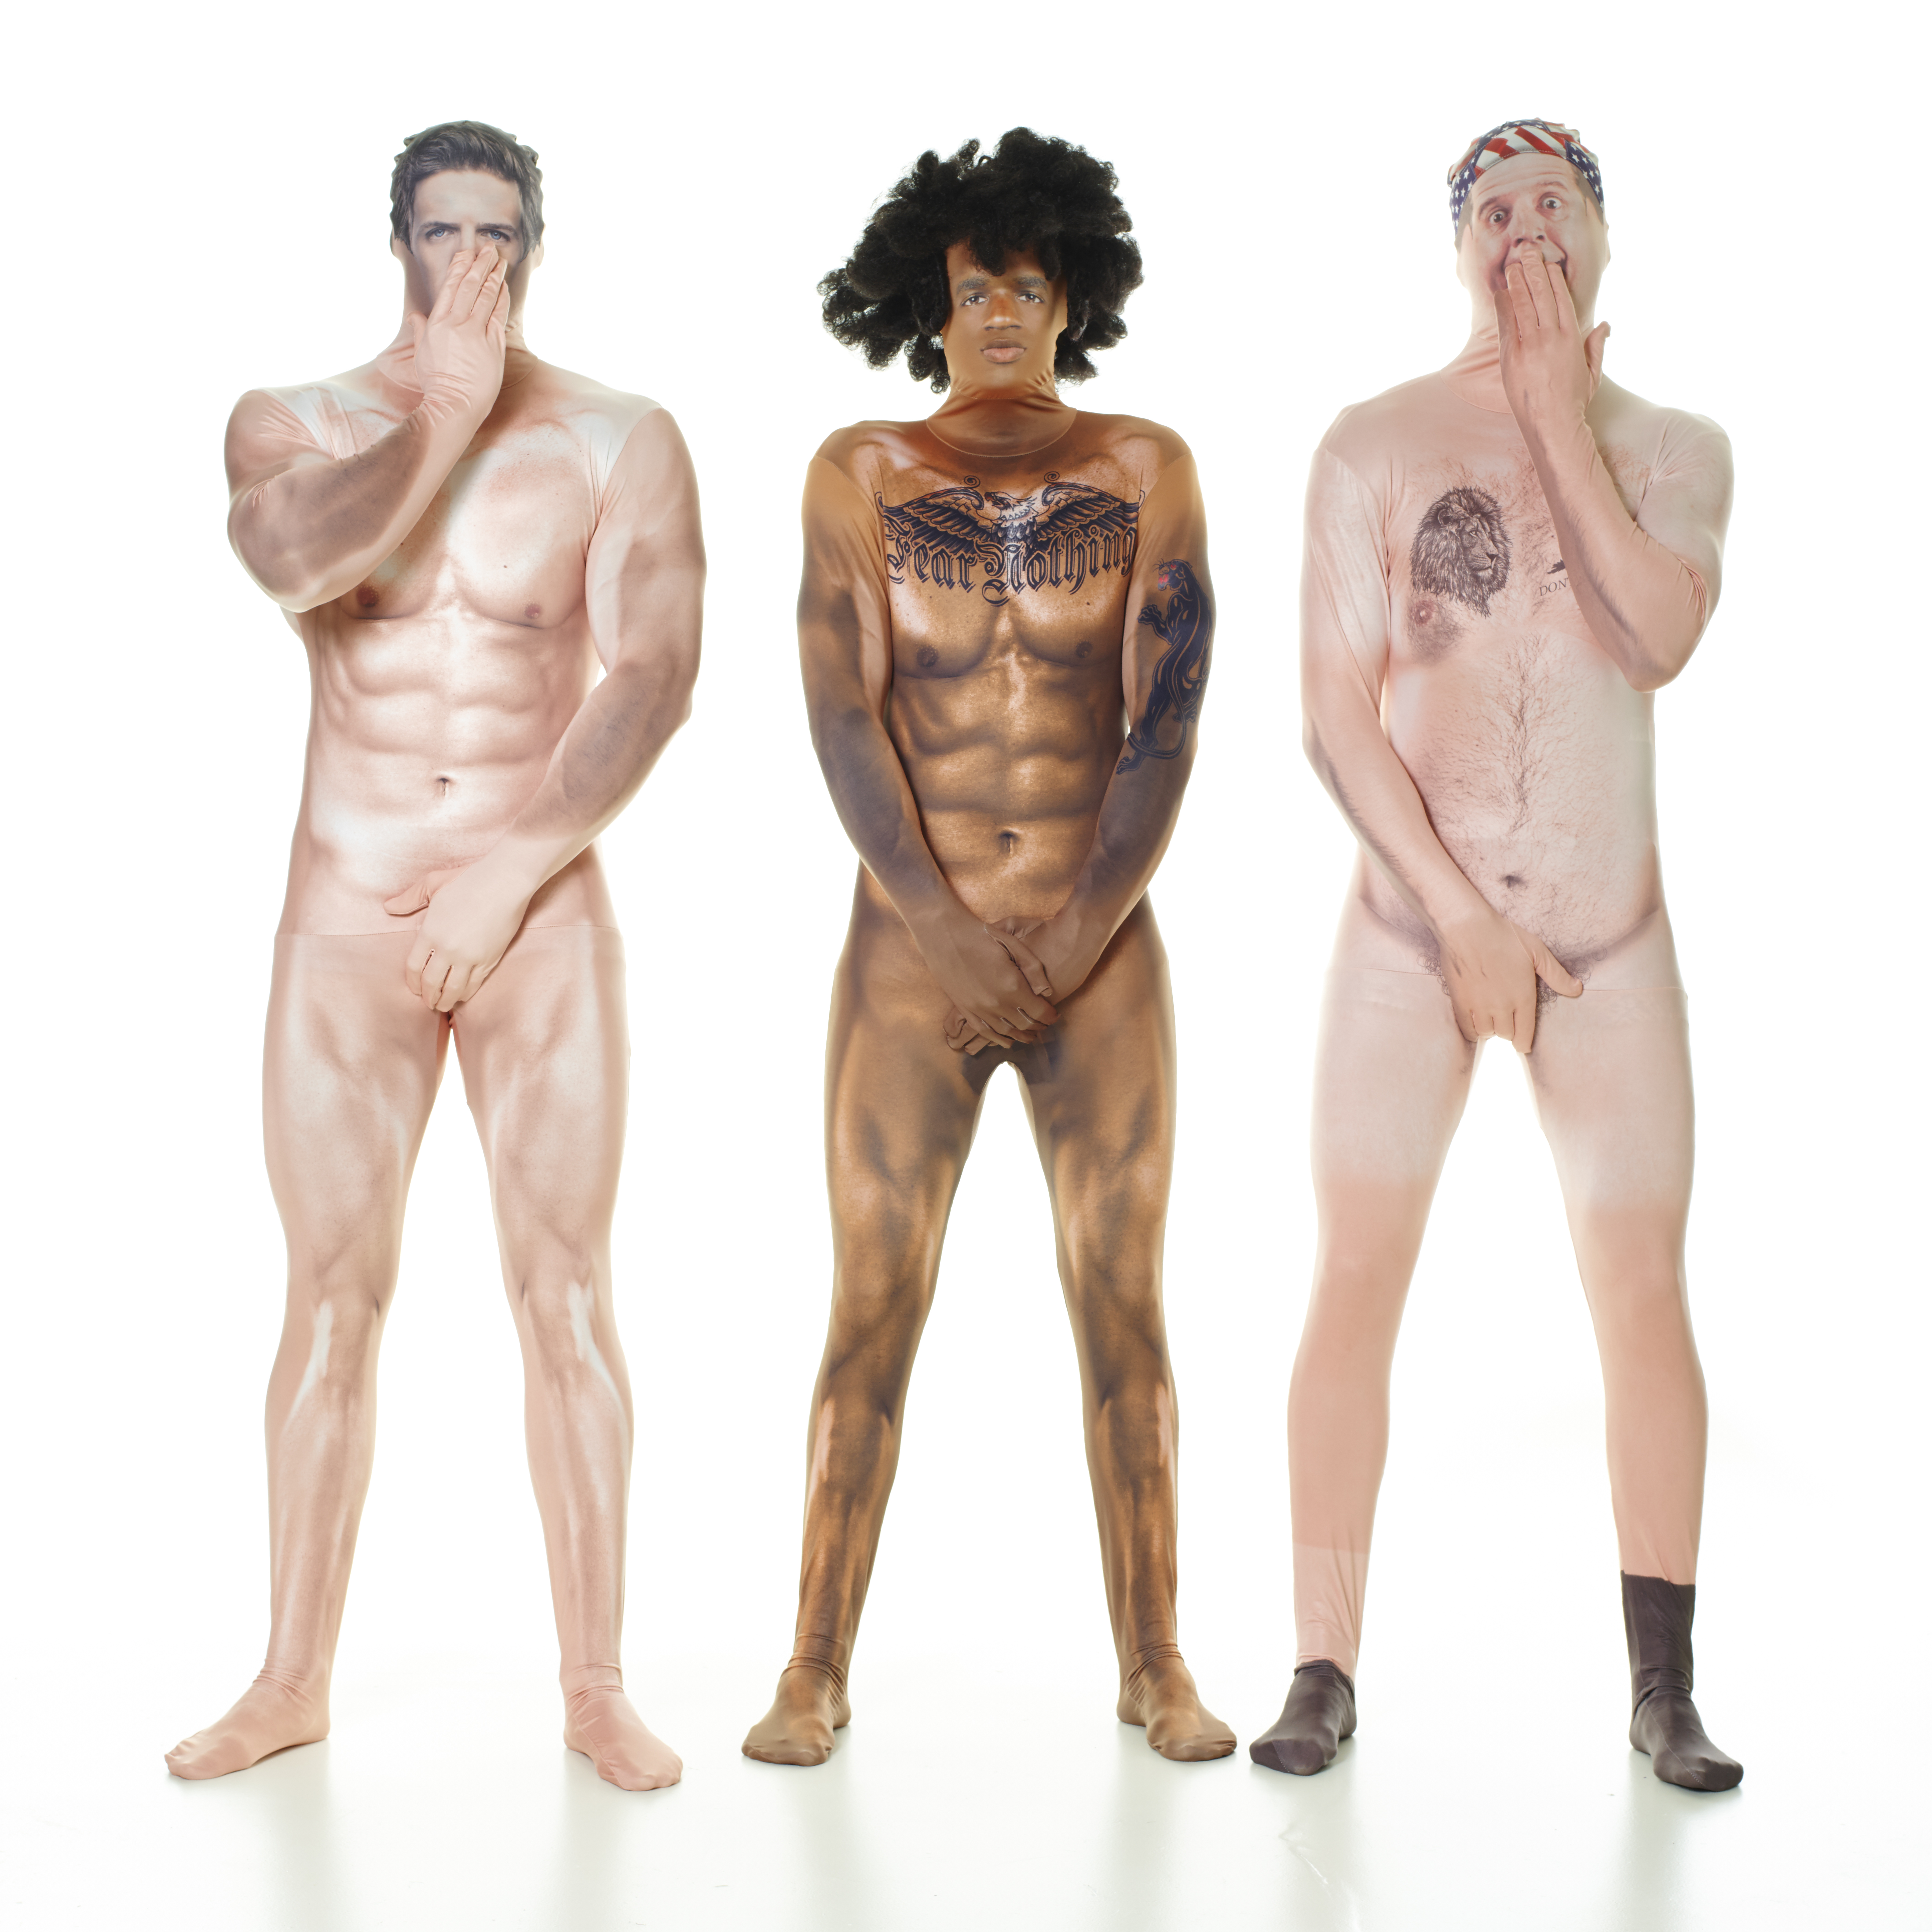 Do you dare to bare? MorphCostumes high definition 'Birthday Suit' is only for the brave